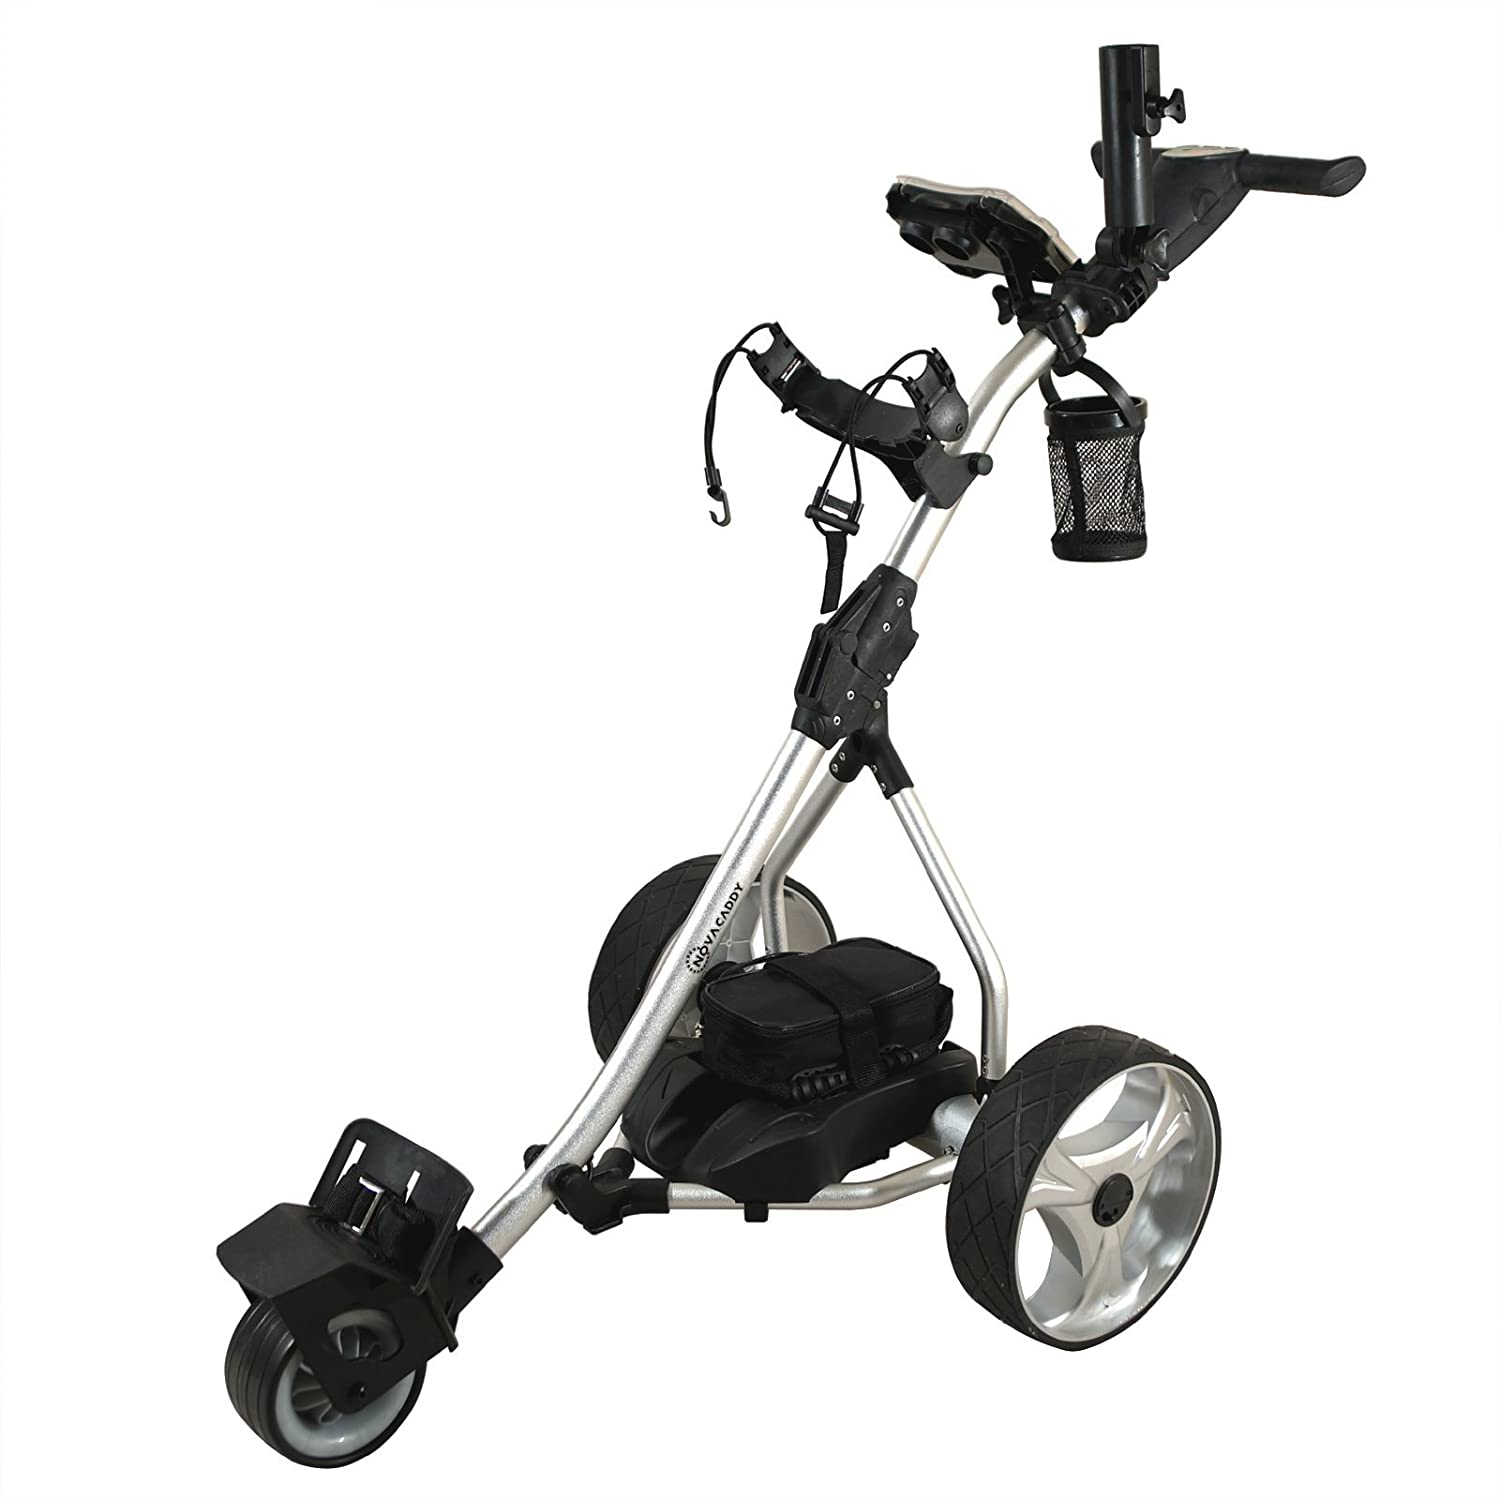 NovaCaddy S2R Remote Control Electric Golf Trolley Black Friday 2019 Deal